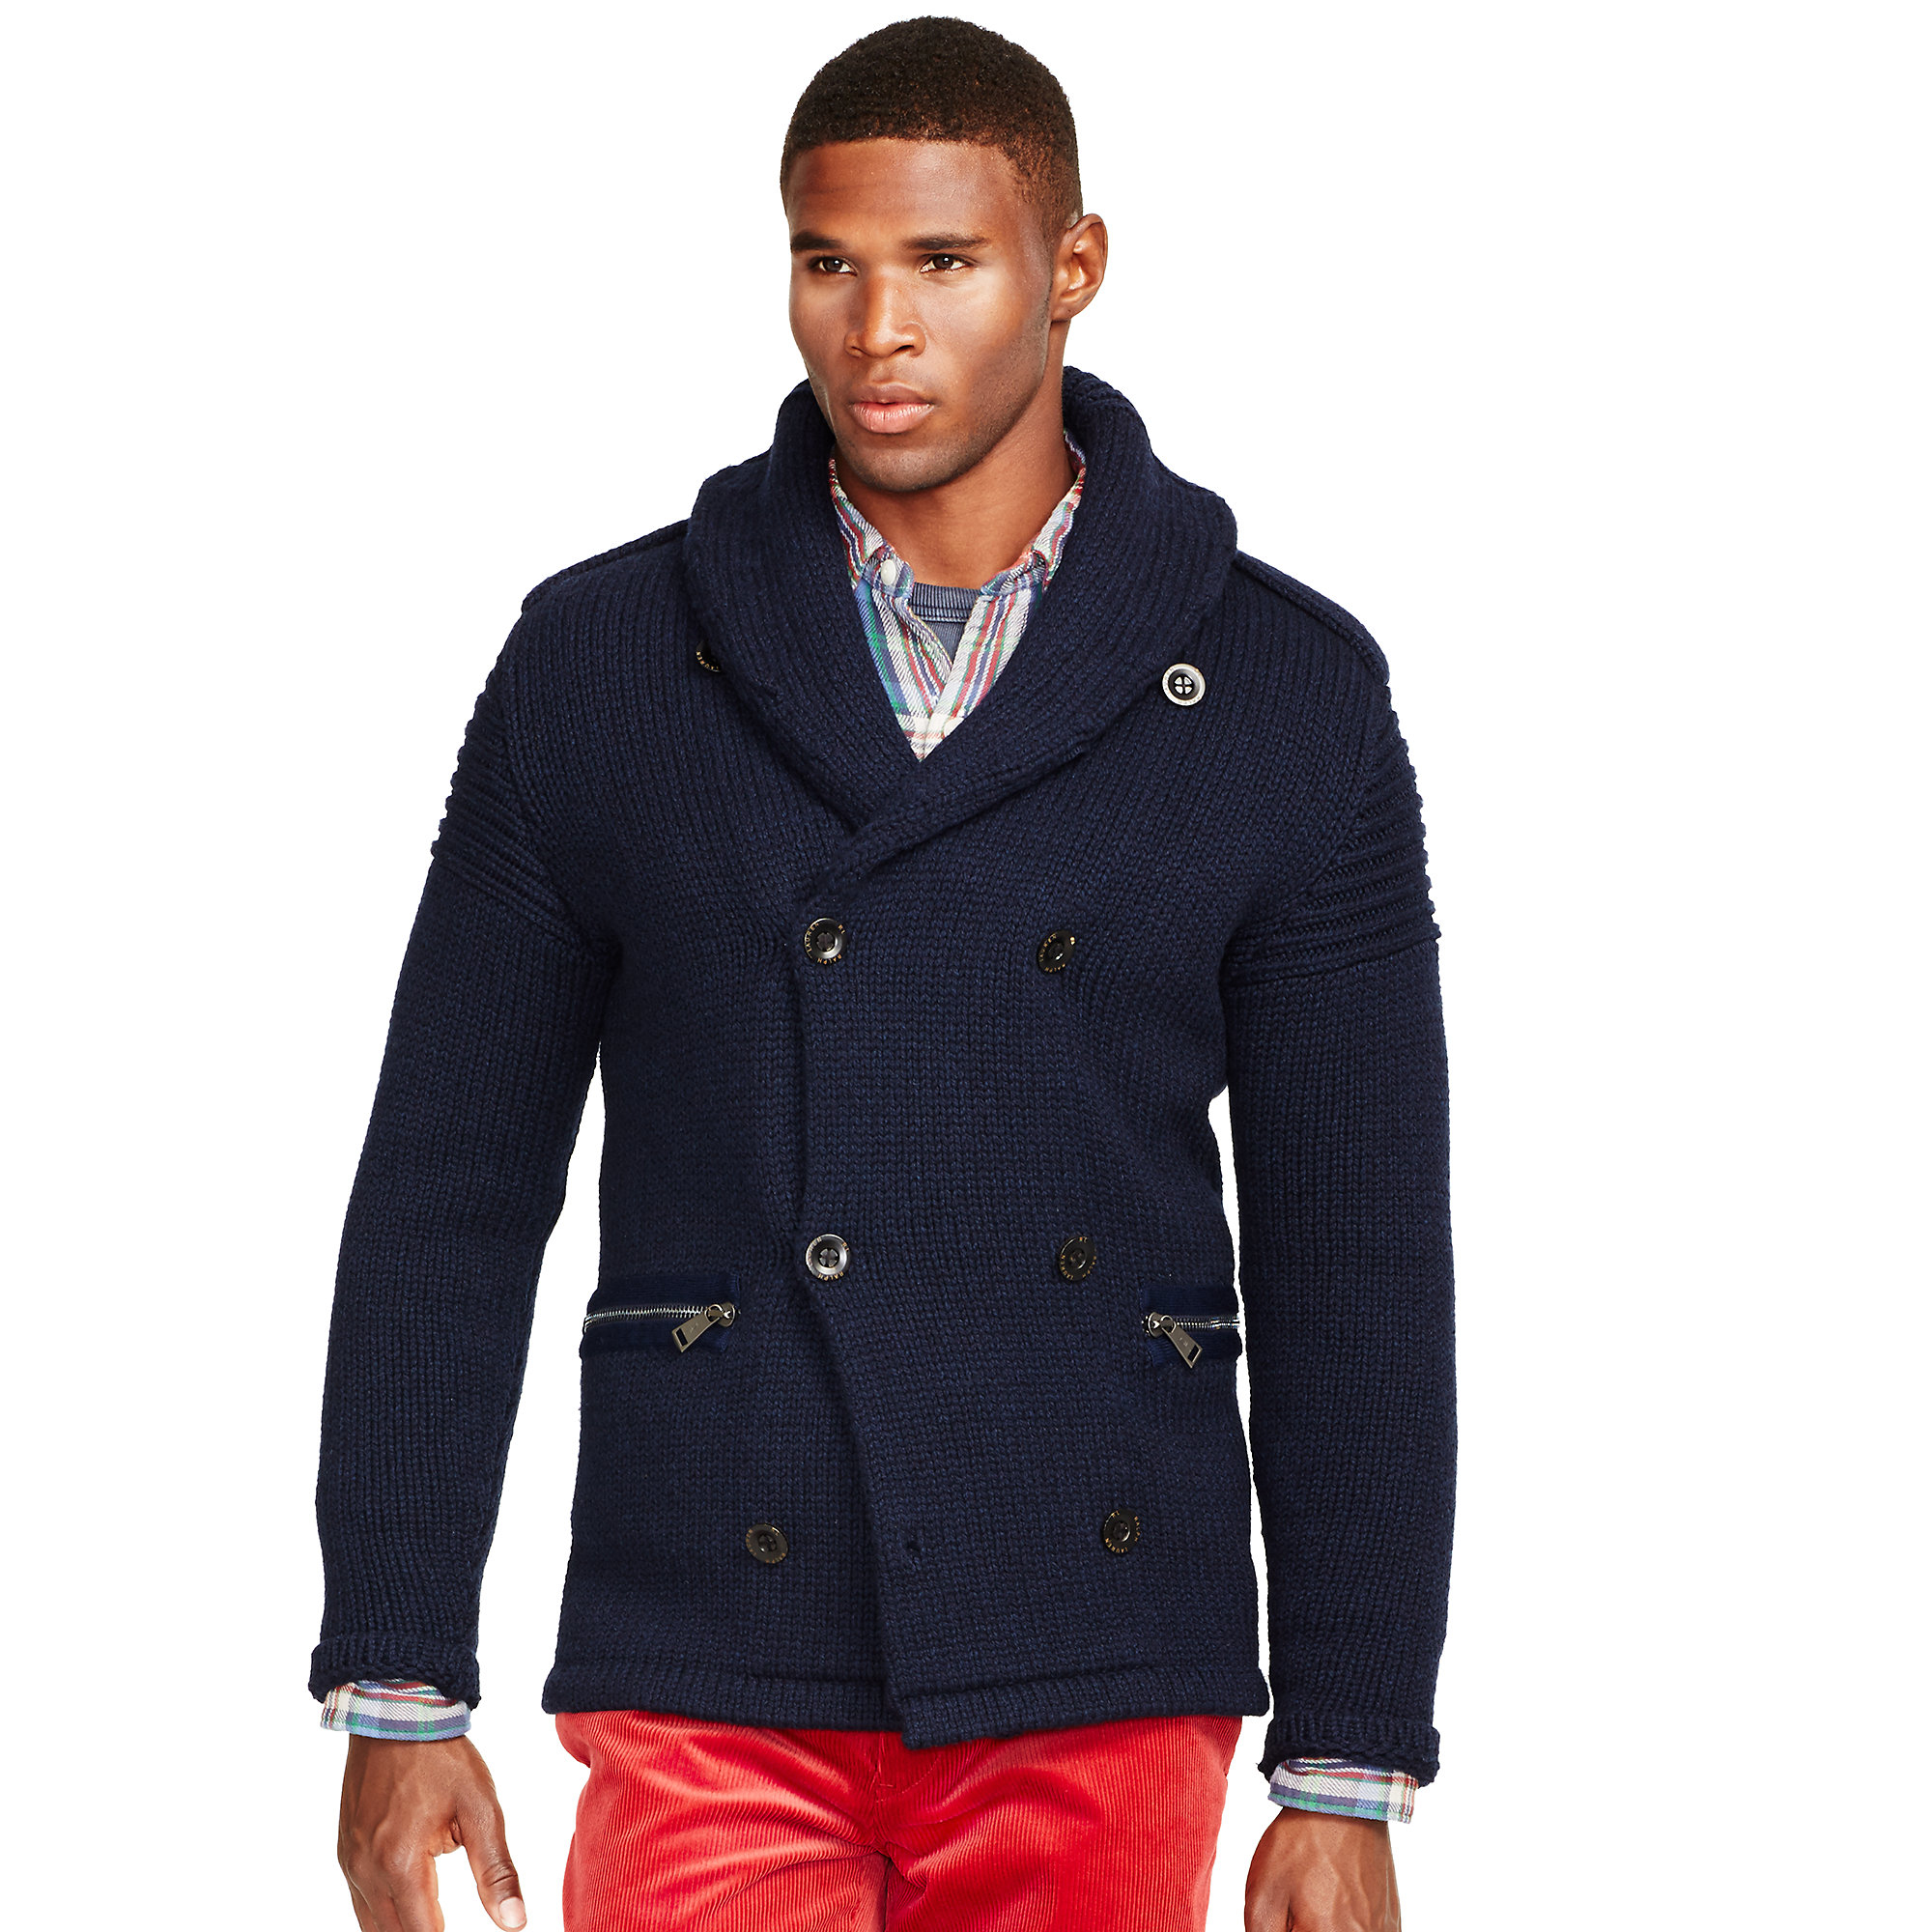 polo ralph lauren merino wool shawl cardigan in blue for men lyst. Black Bedroom Furniture Sets. Home Design Ideas